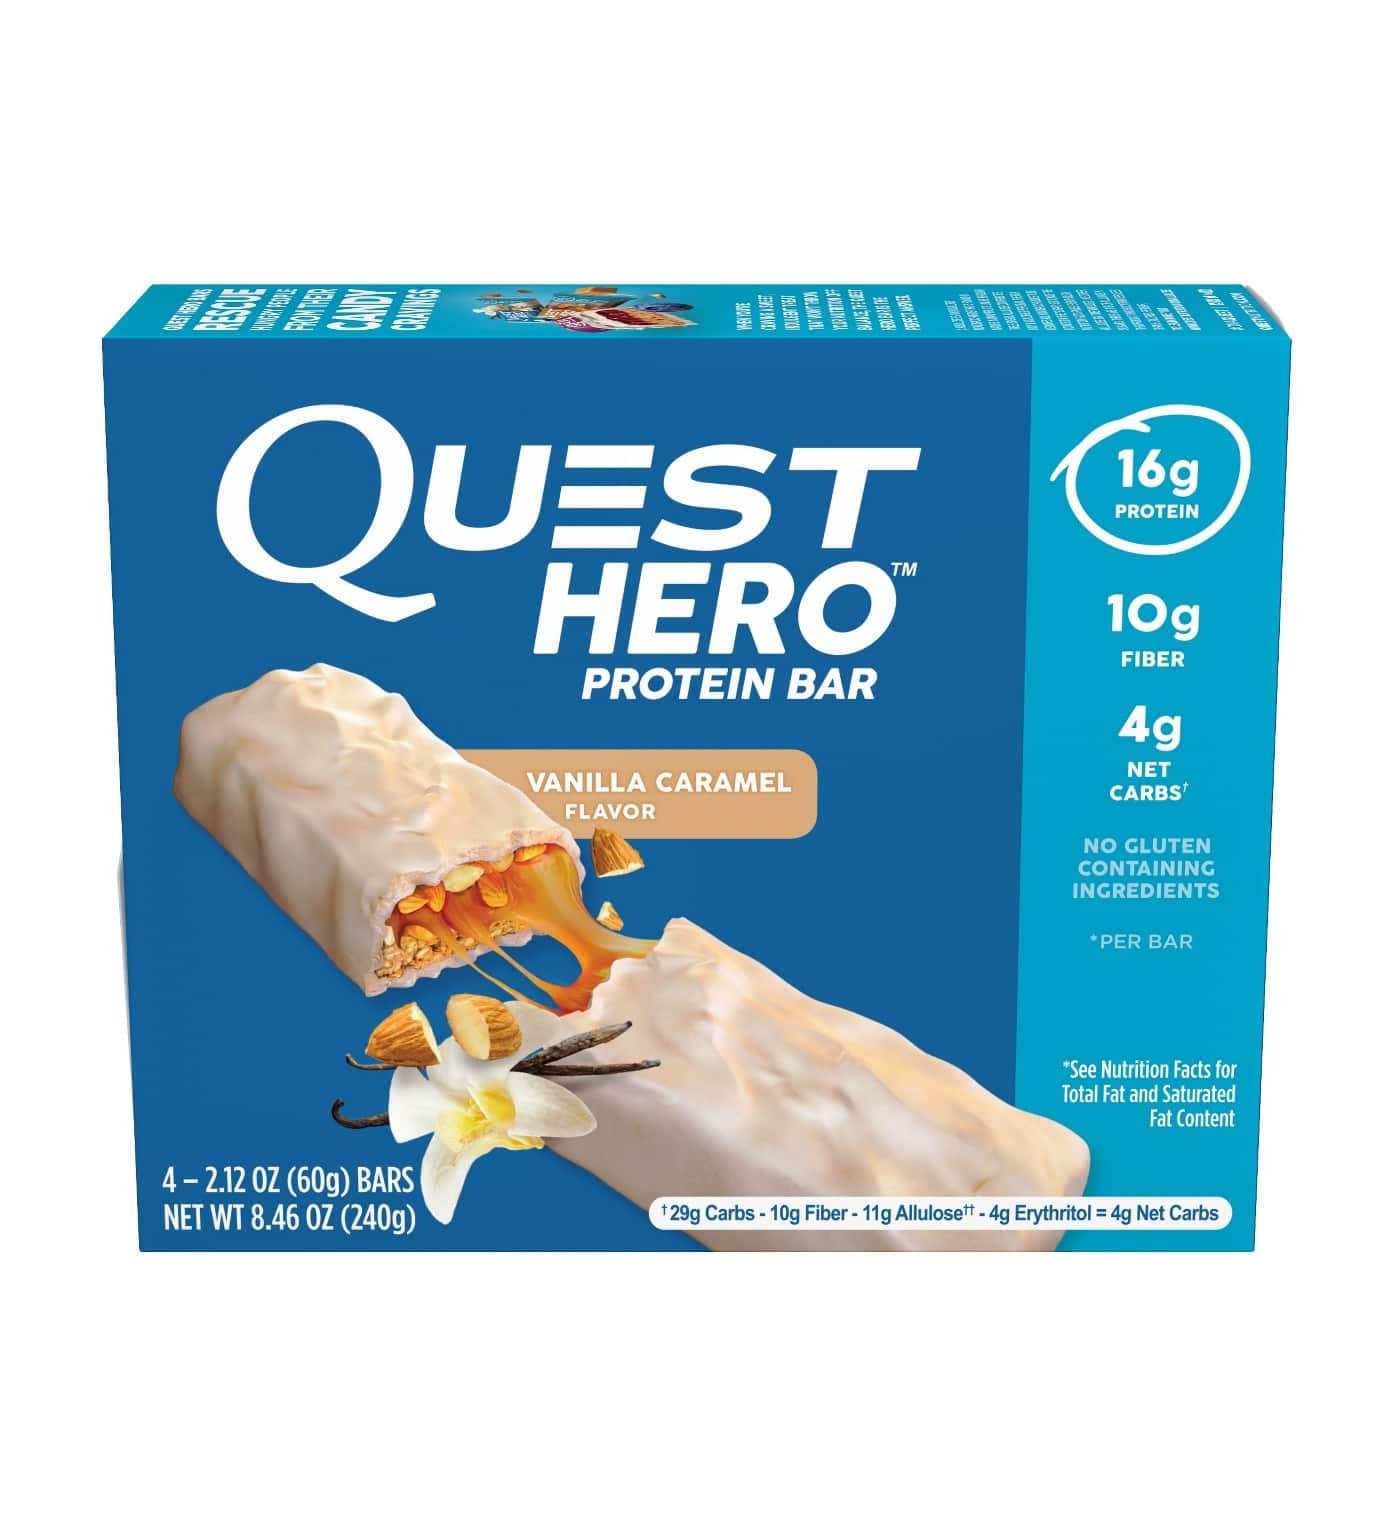 Quest Hero Protein Bar (4ct/Vanilla Caramel) for $3.42 (clearance + subscription discount) @ Target